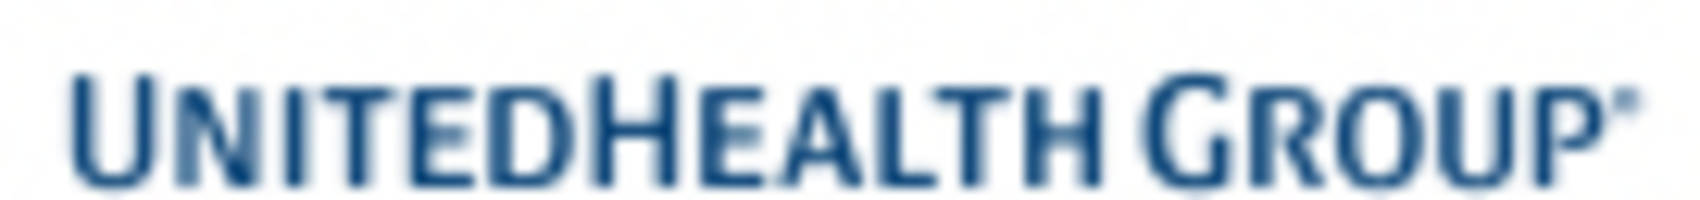 unitedhealth group board authorizes payment of quarterly dividend to shareholders